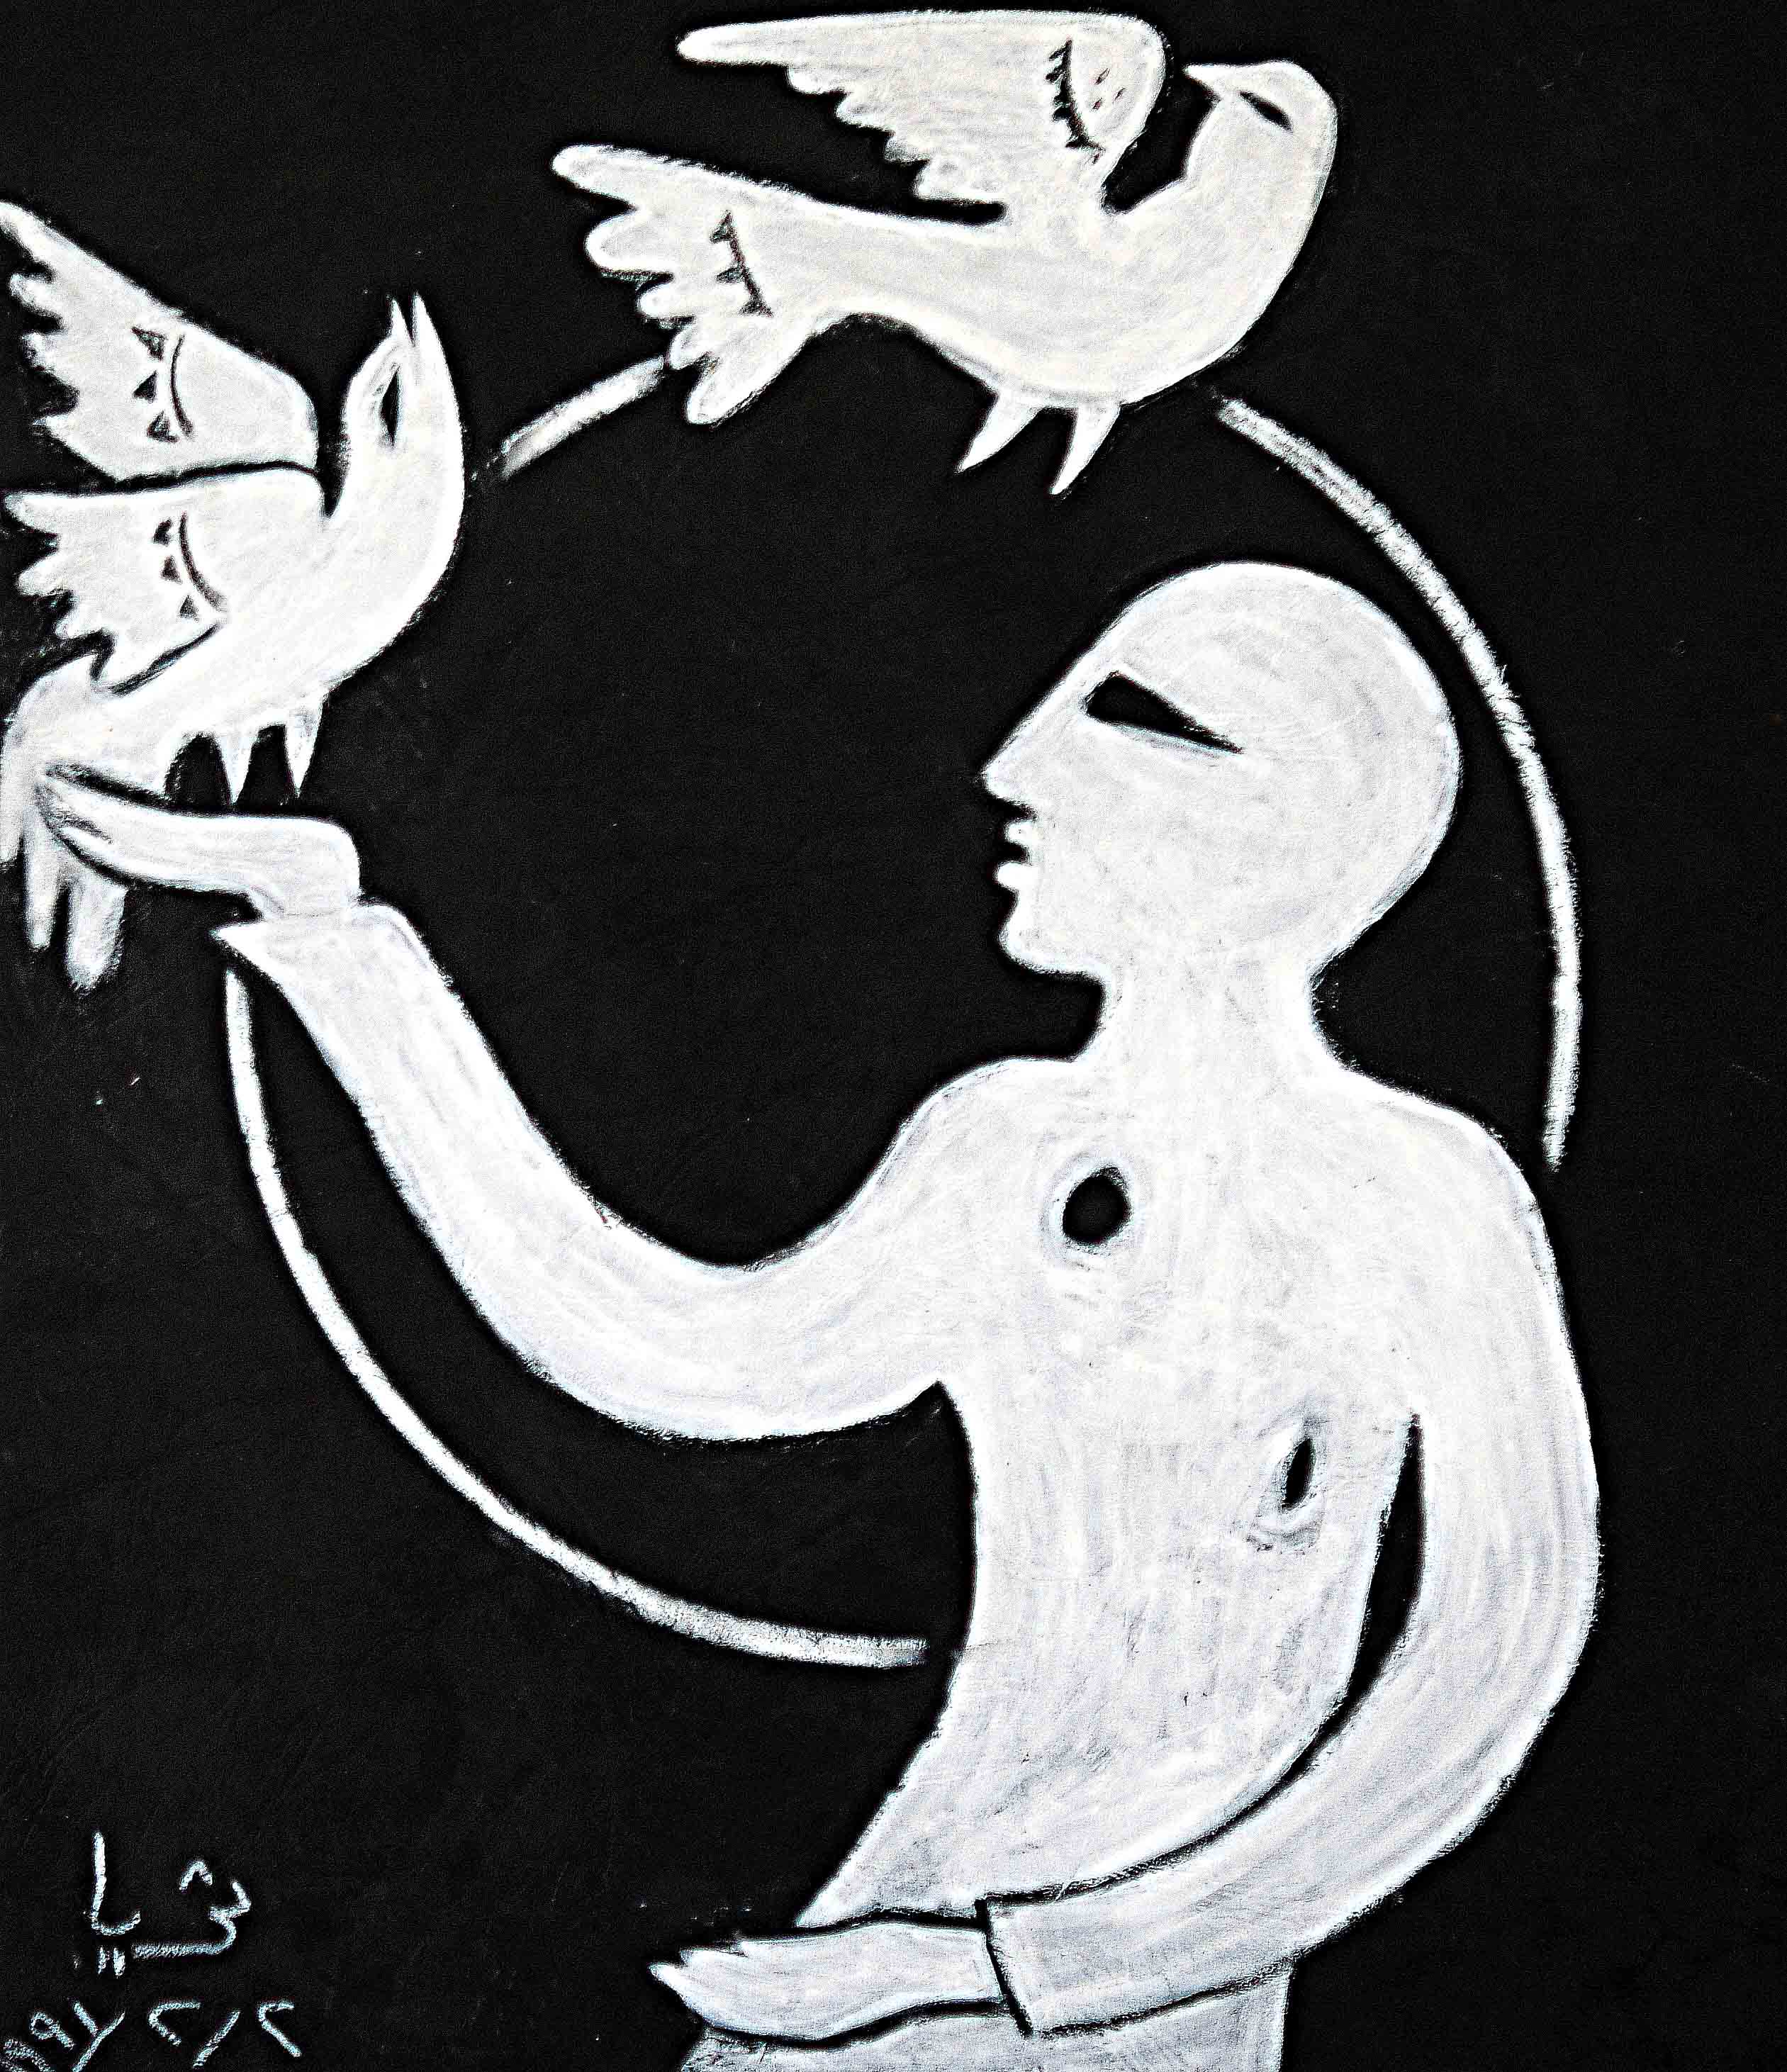 Flying Peace II, 1991